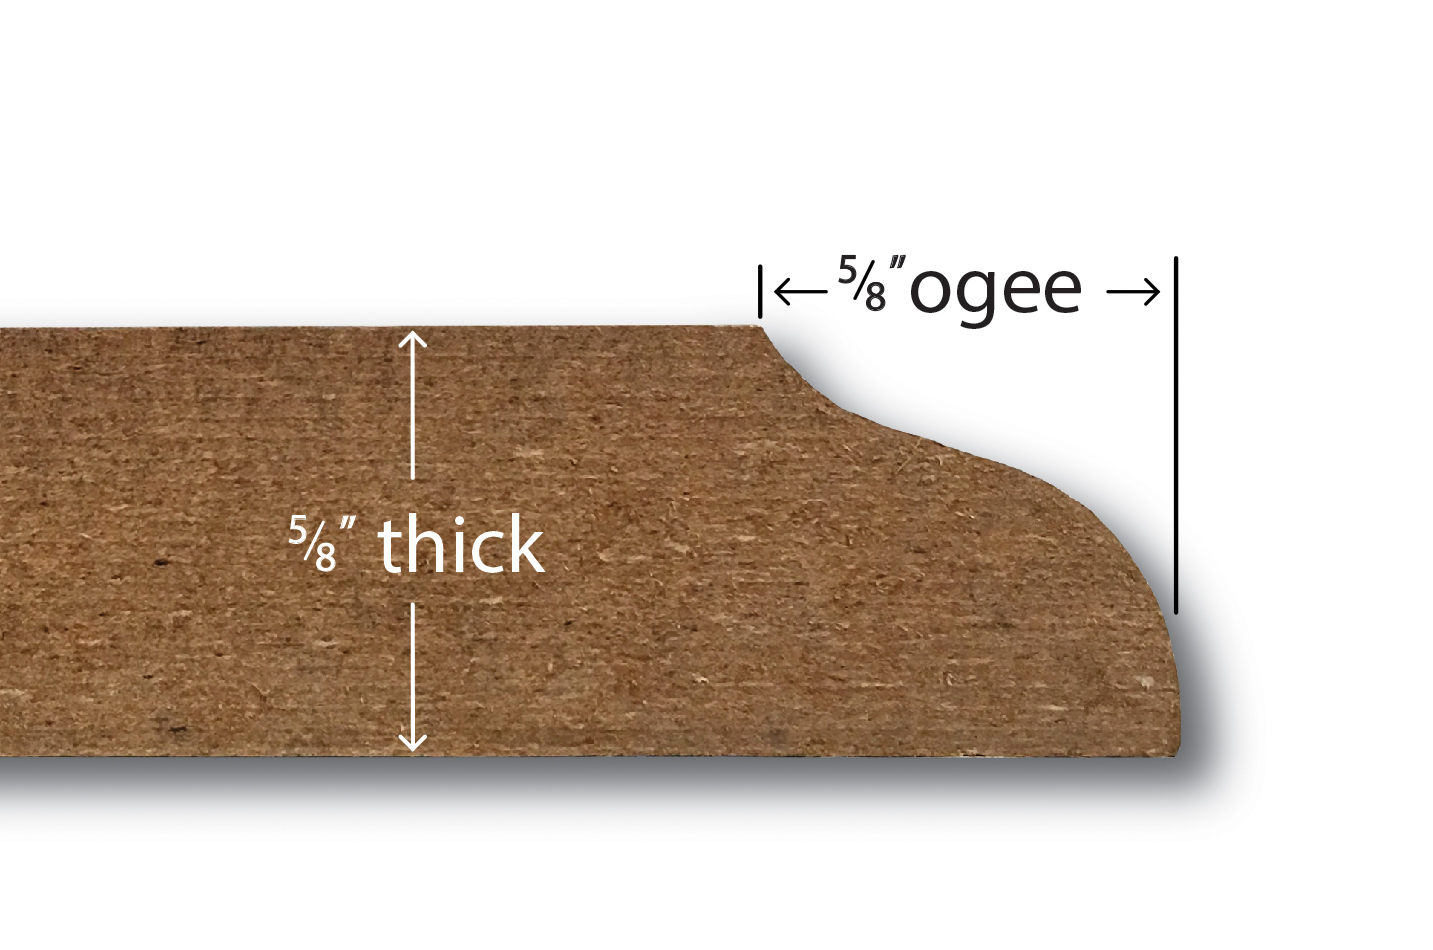 A cross section of an MDF plaque showing the ogee depth, thickness and material detail.